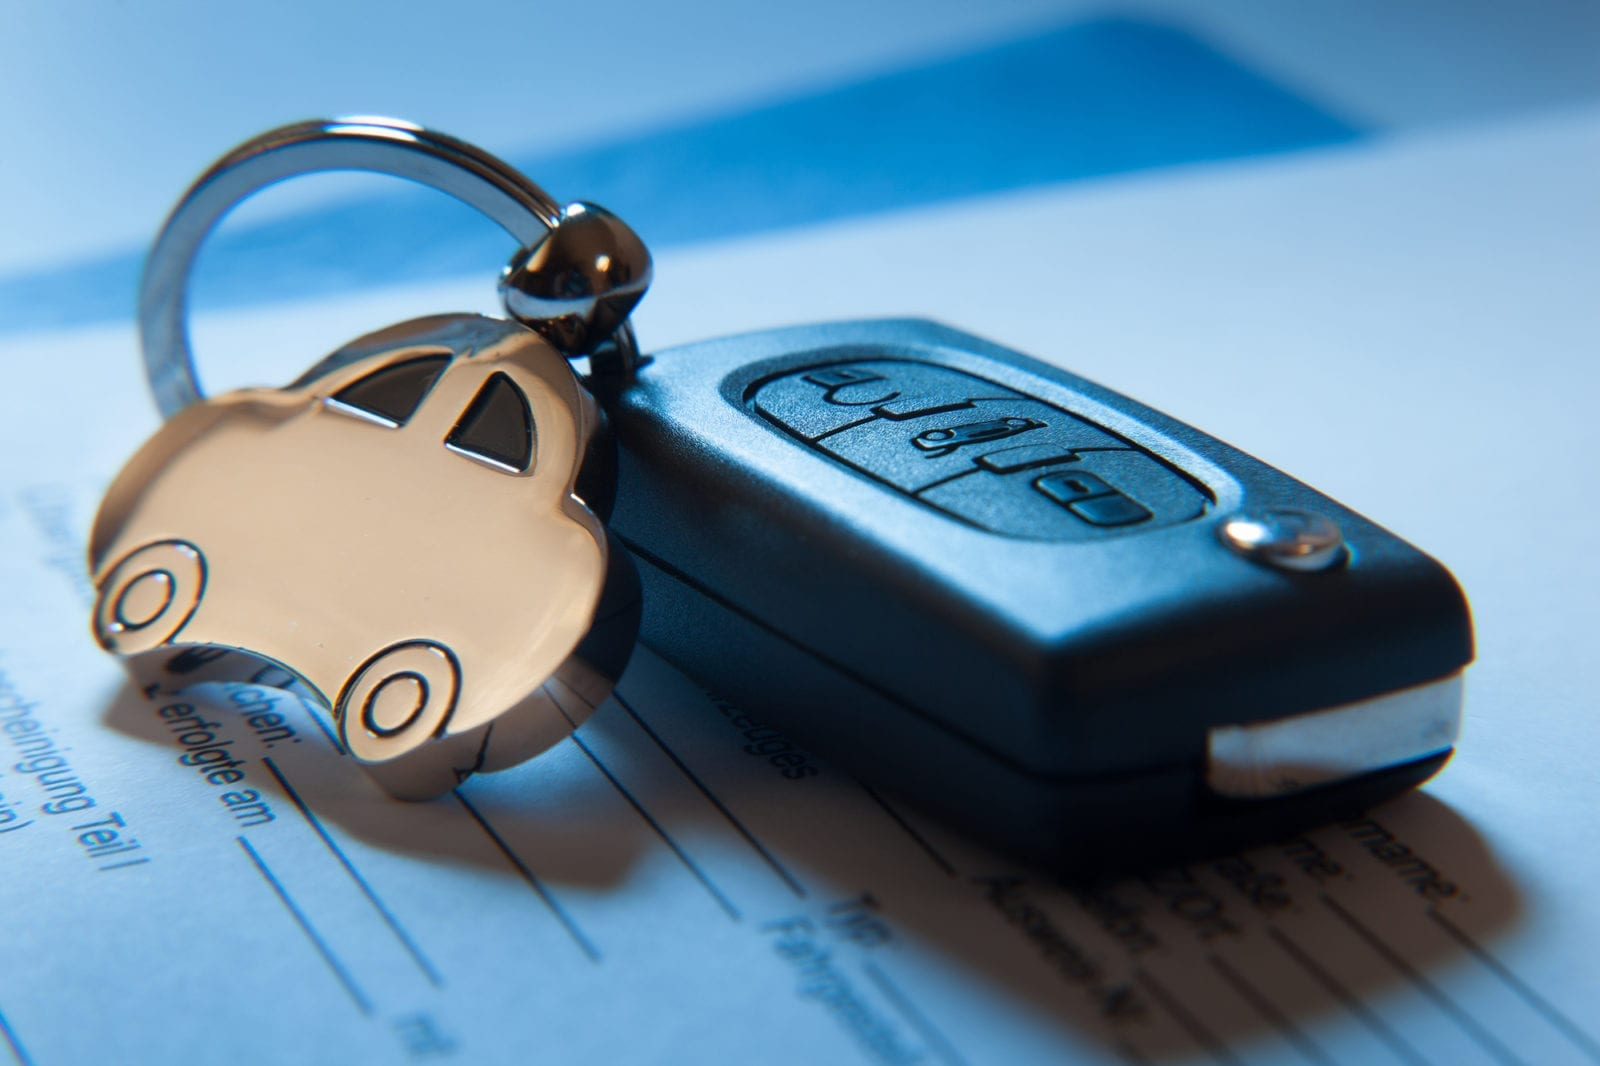 Get approved for bad credit car finance!